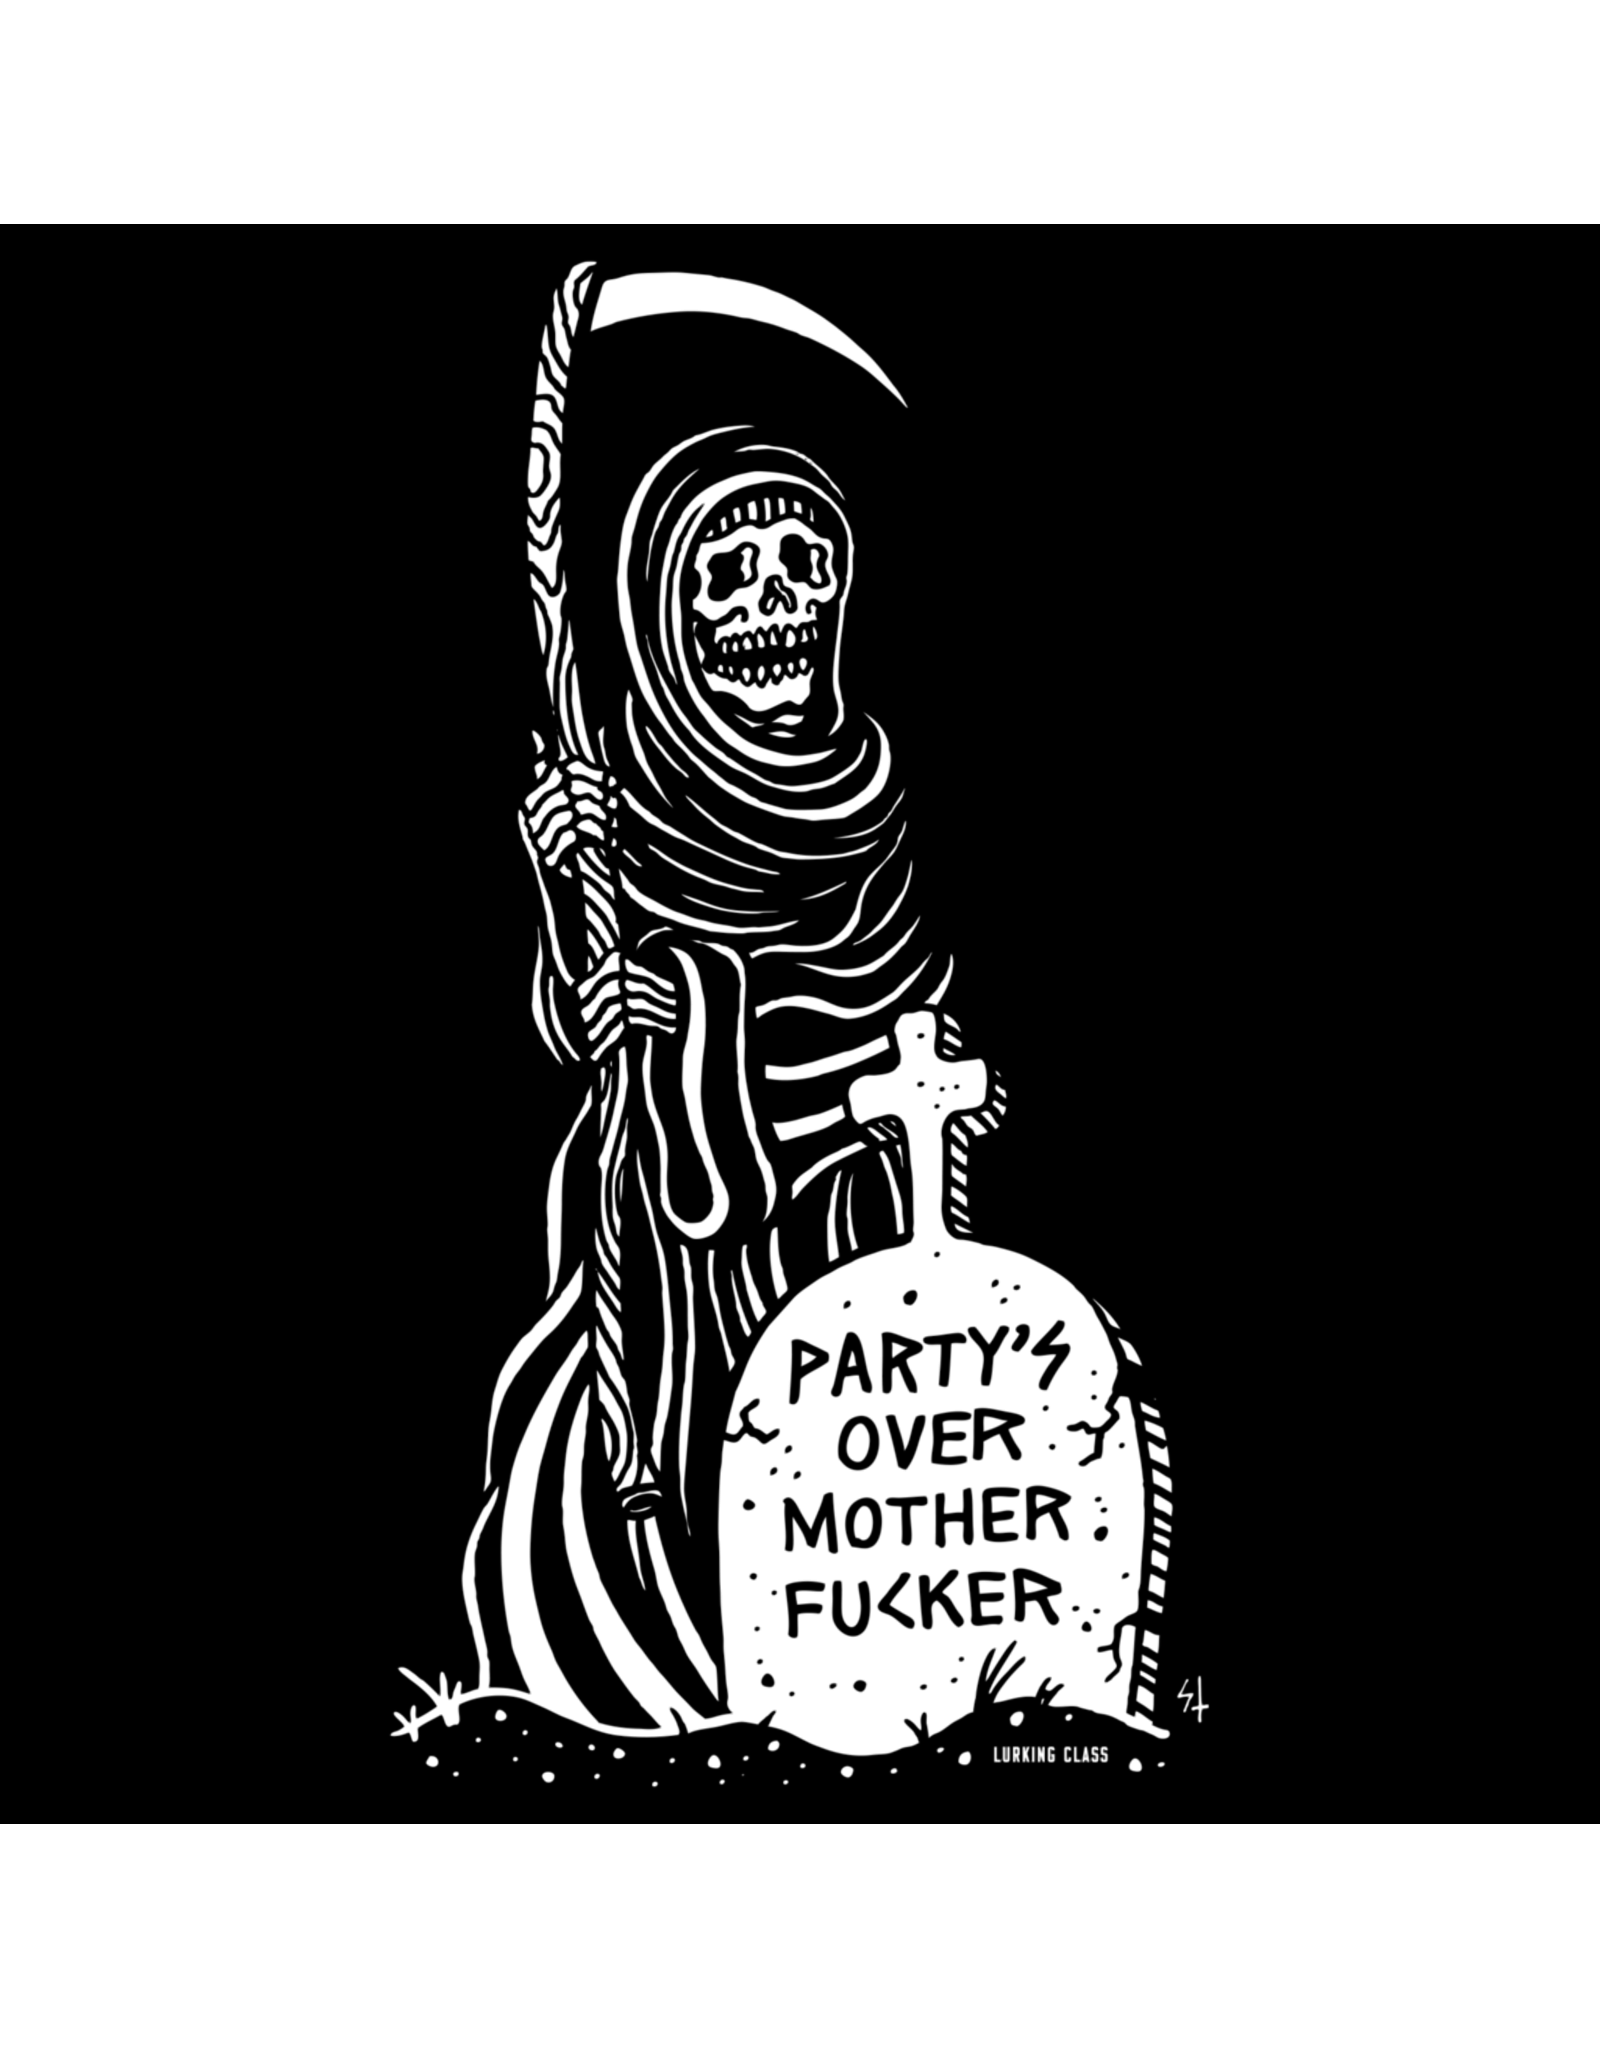 Sketchy Tank Party's Over Tee